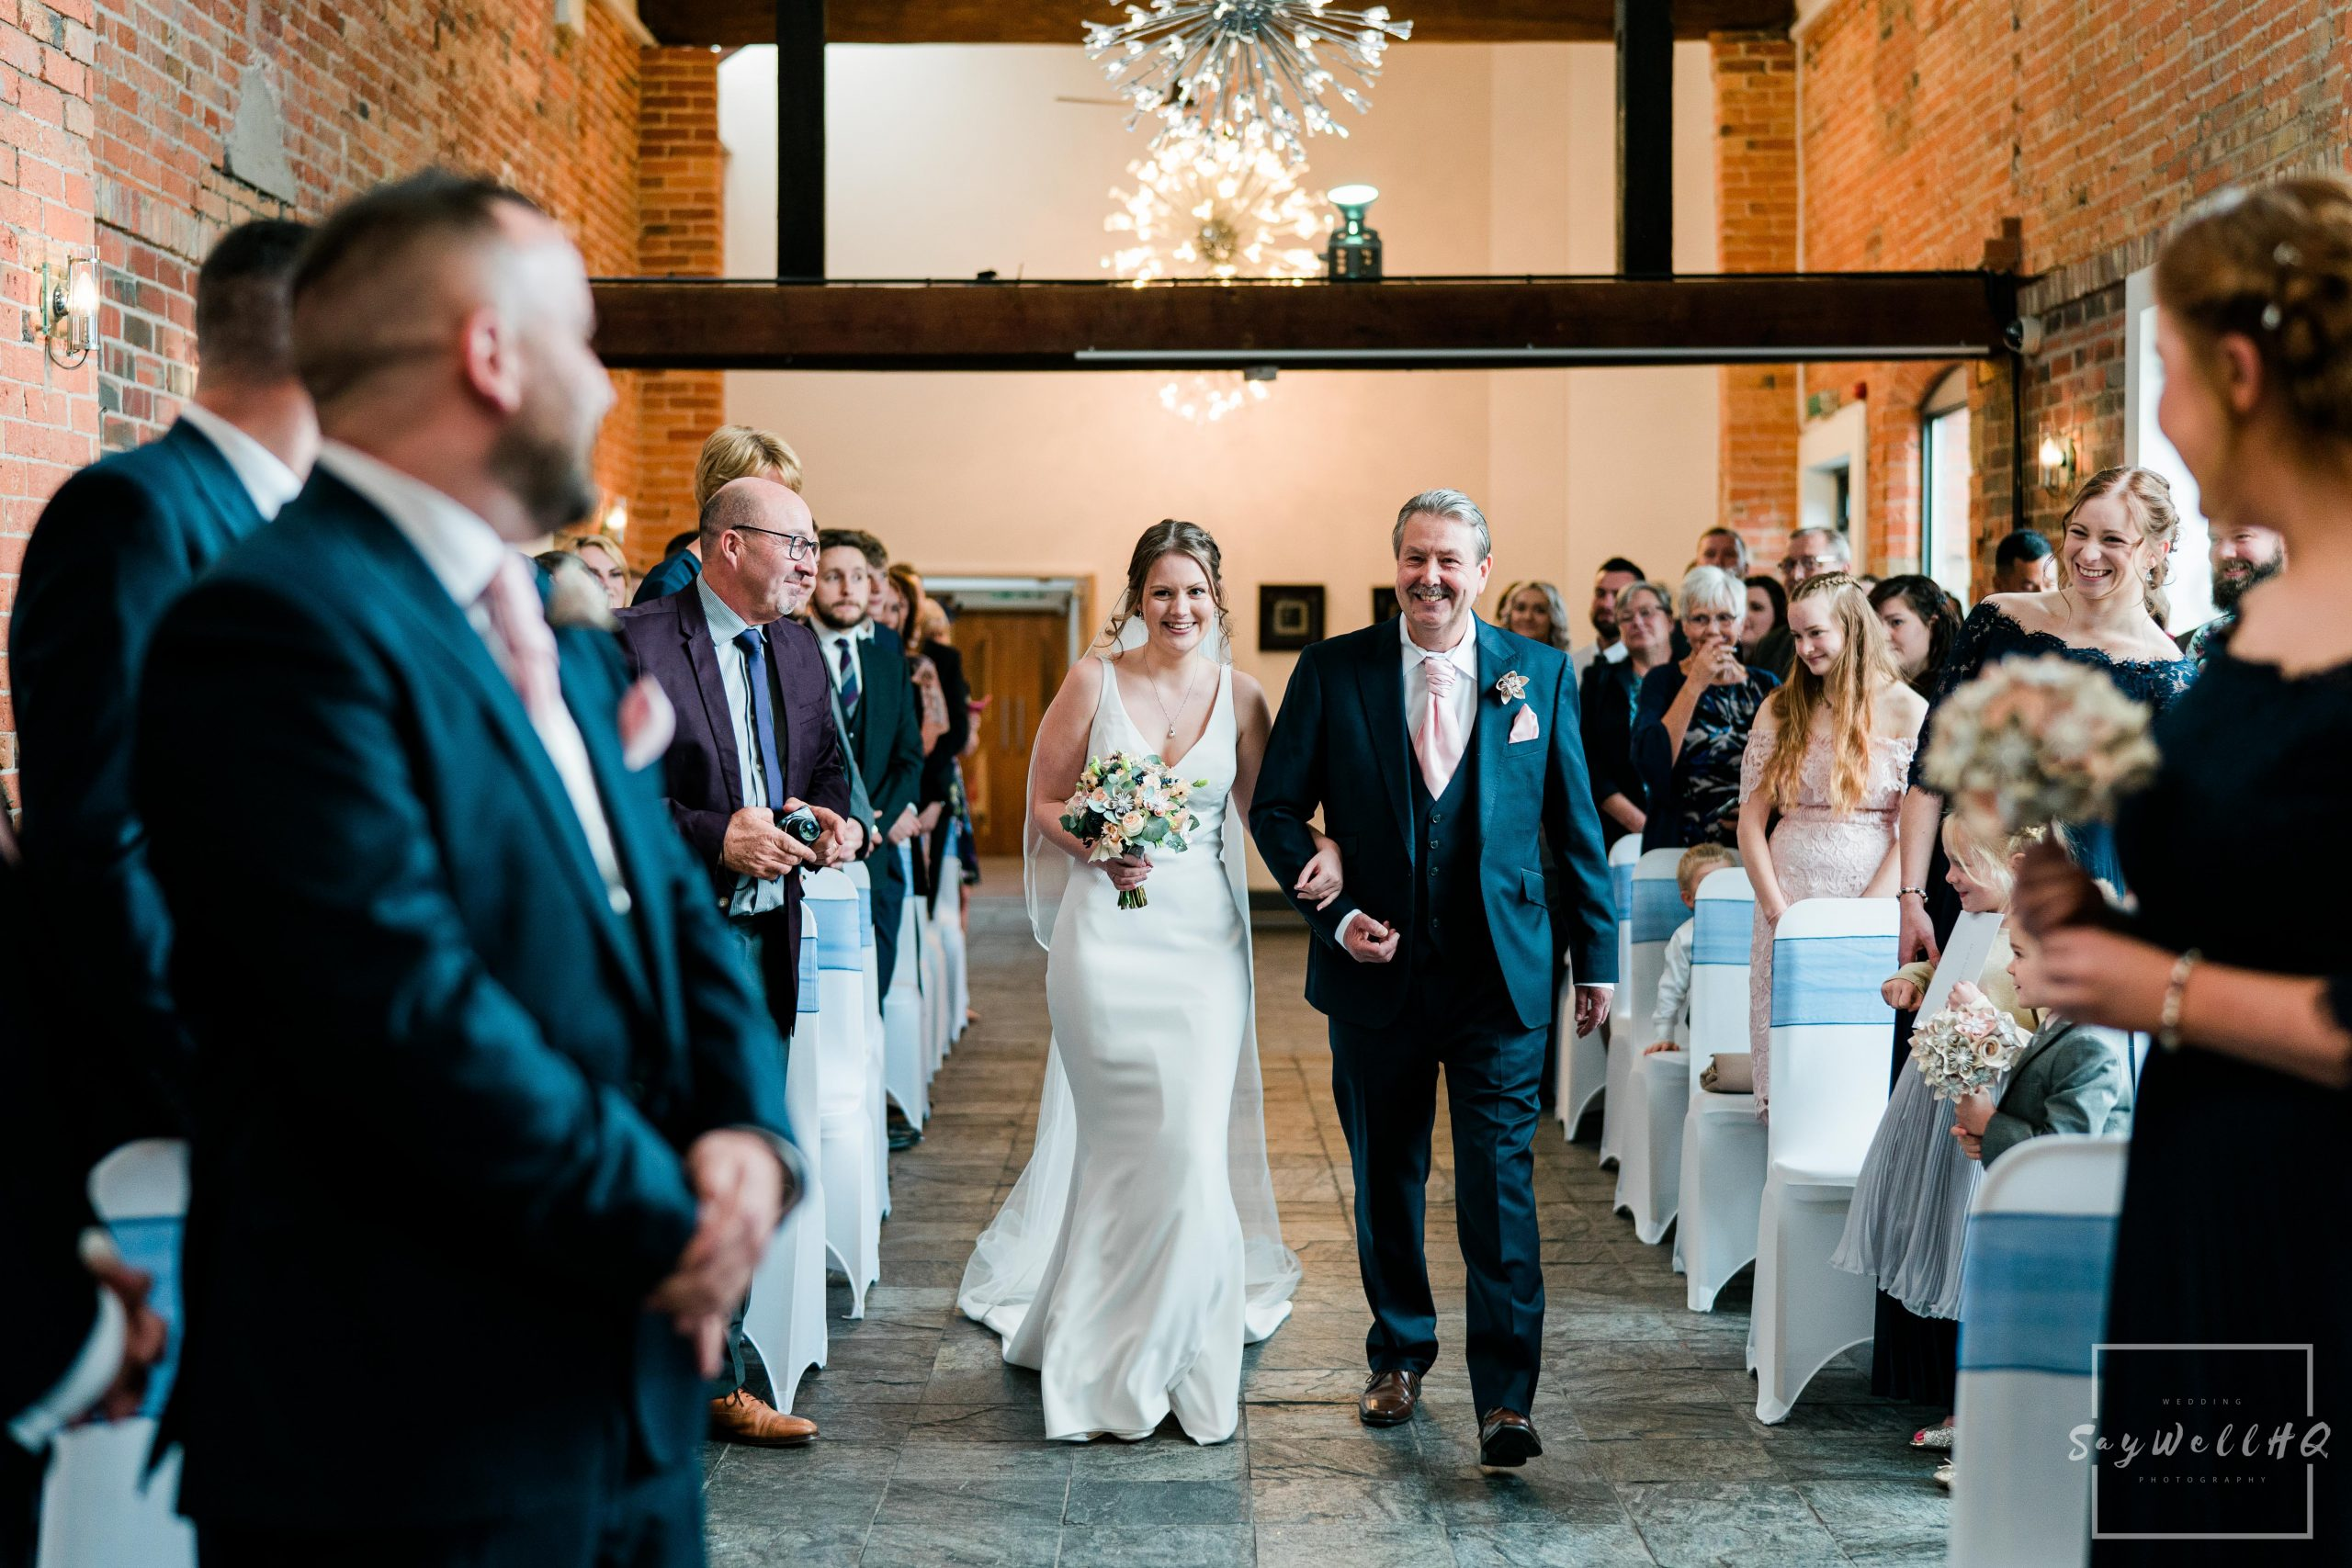 Derby Wedding Photographer -bride and her dad walking down the aisle.